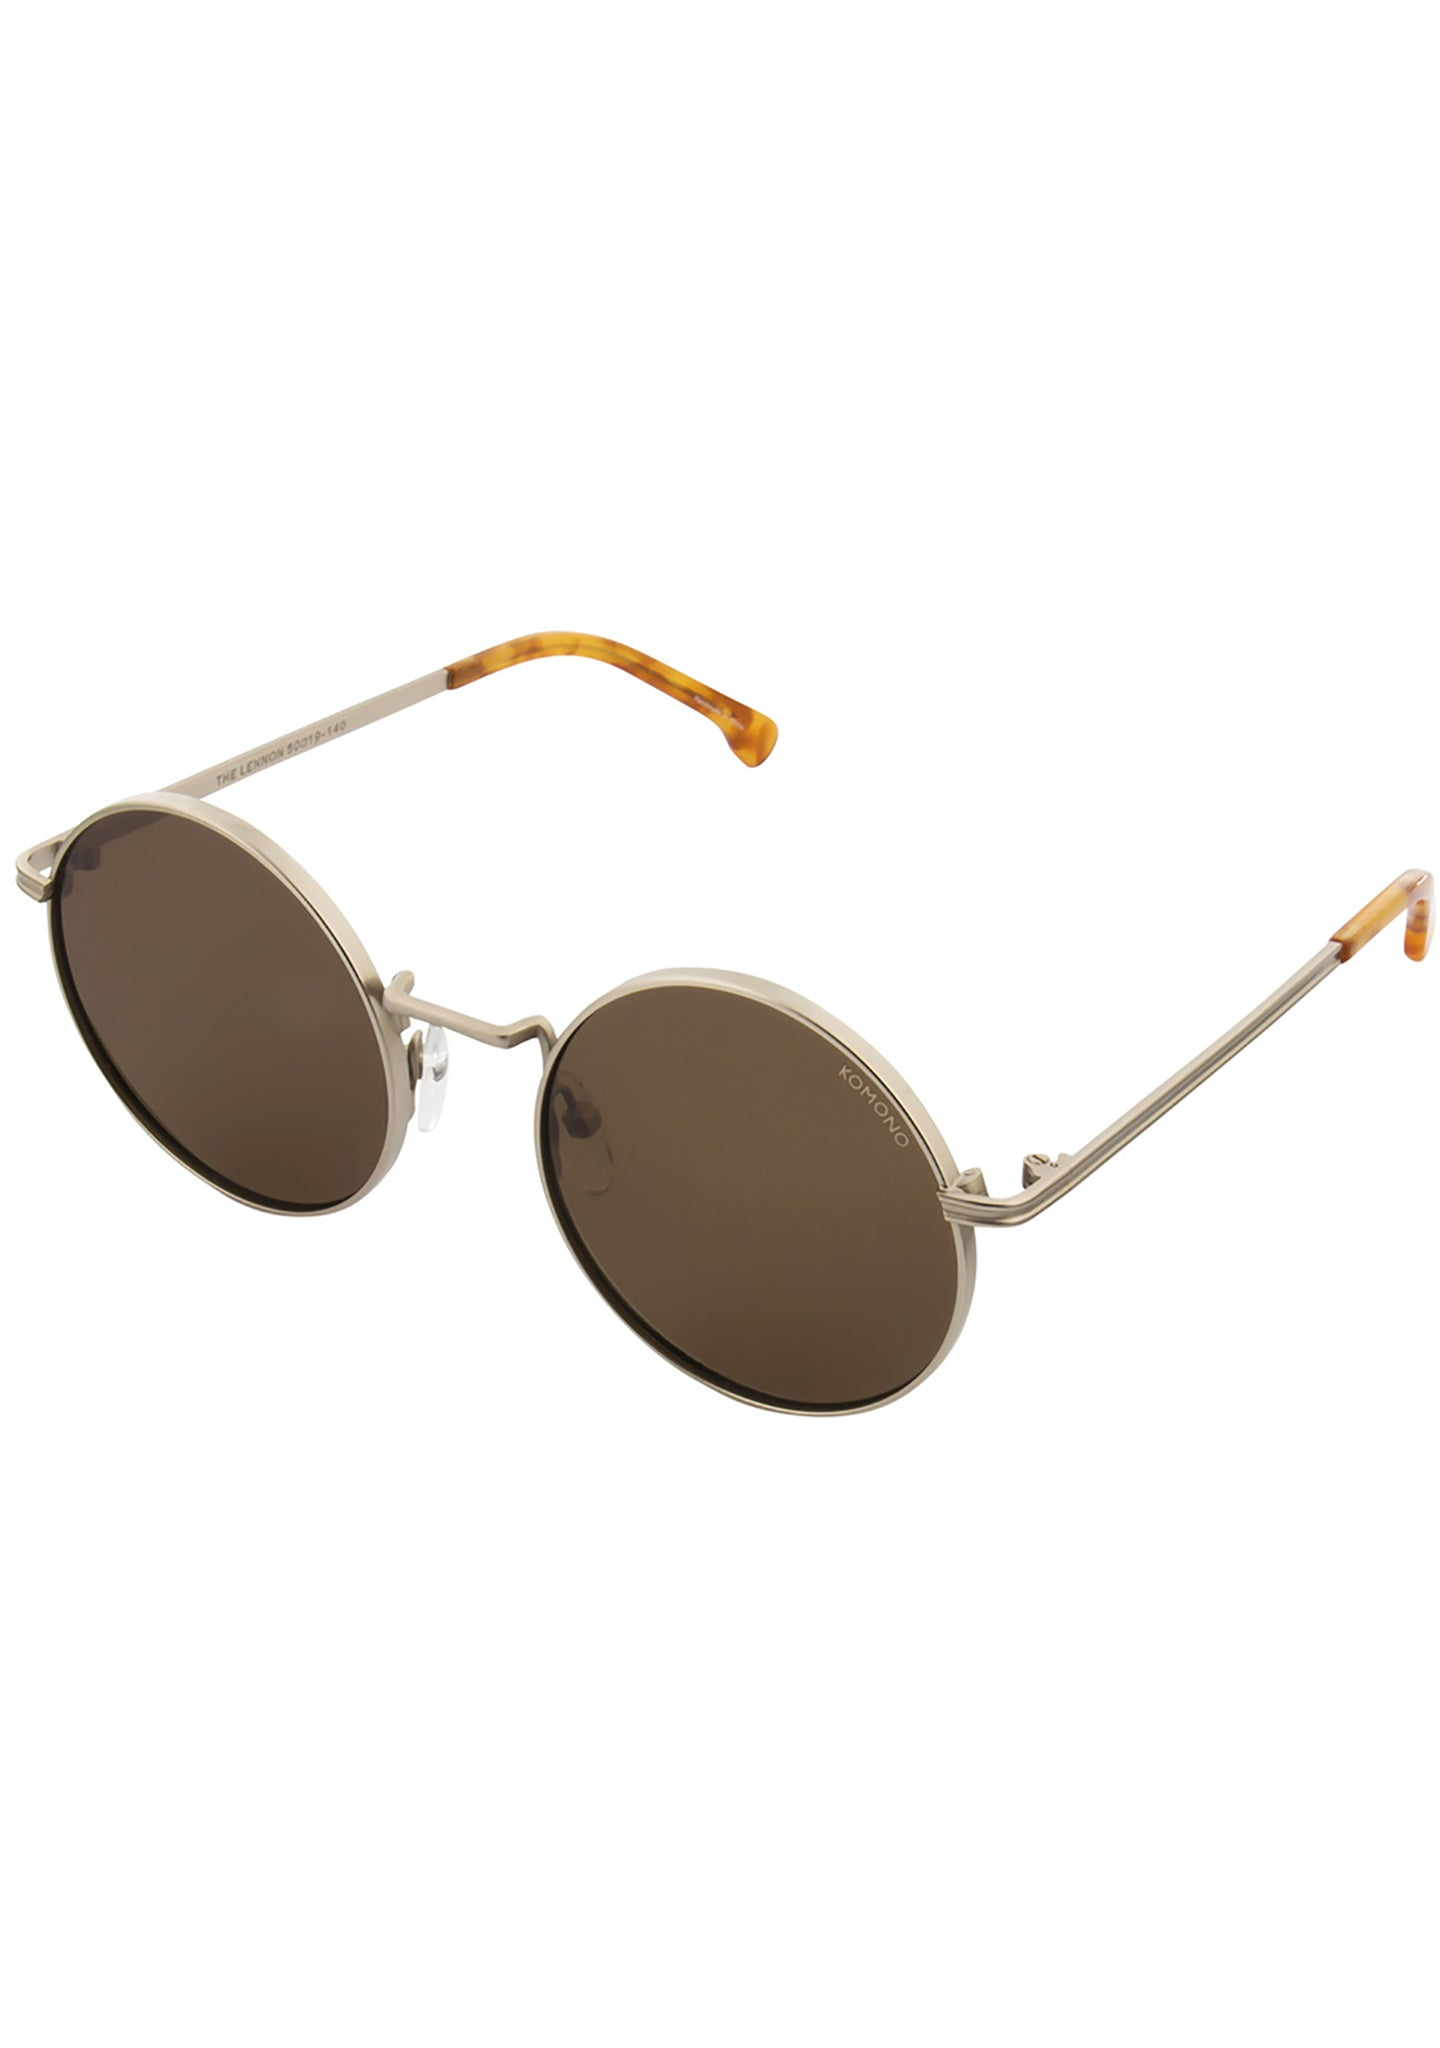 KOMONO CRAFTED Lennon Sunglasses in White Gold